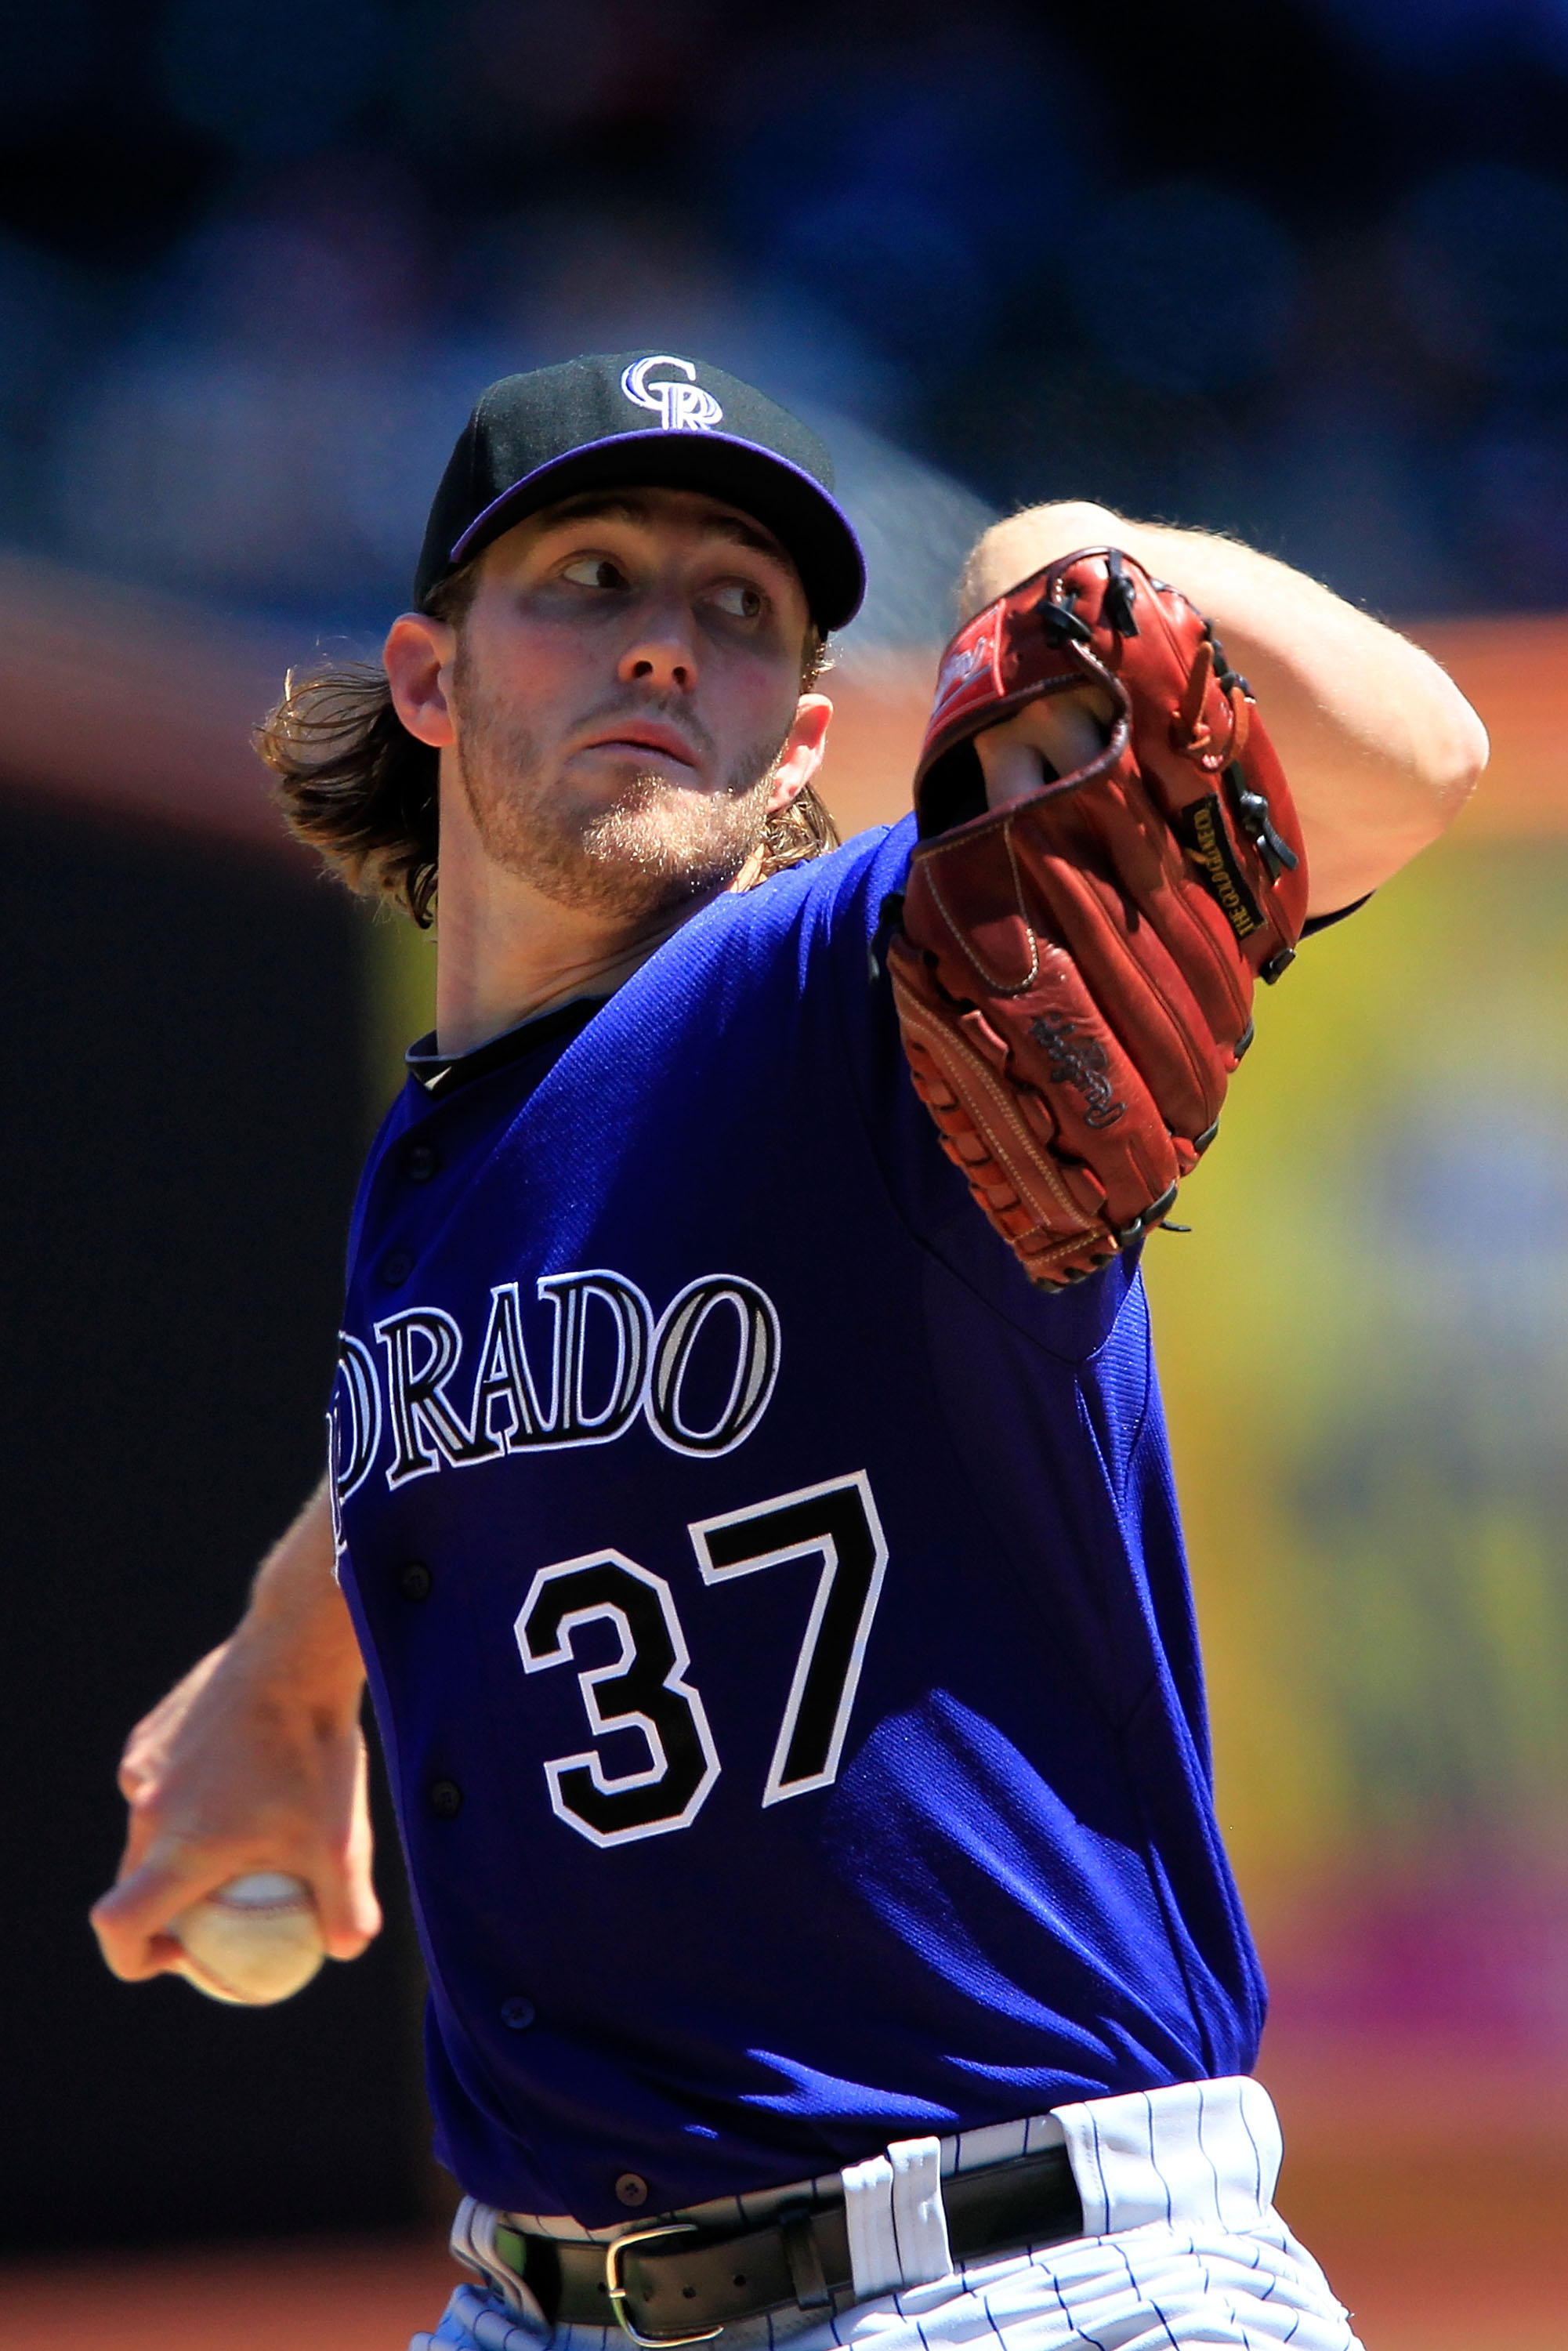 Rockies spot starter Greg Reynolds tosses a pitch in his victory against the Mets on April 14, 2011, his first MLB victory since 2008